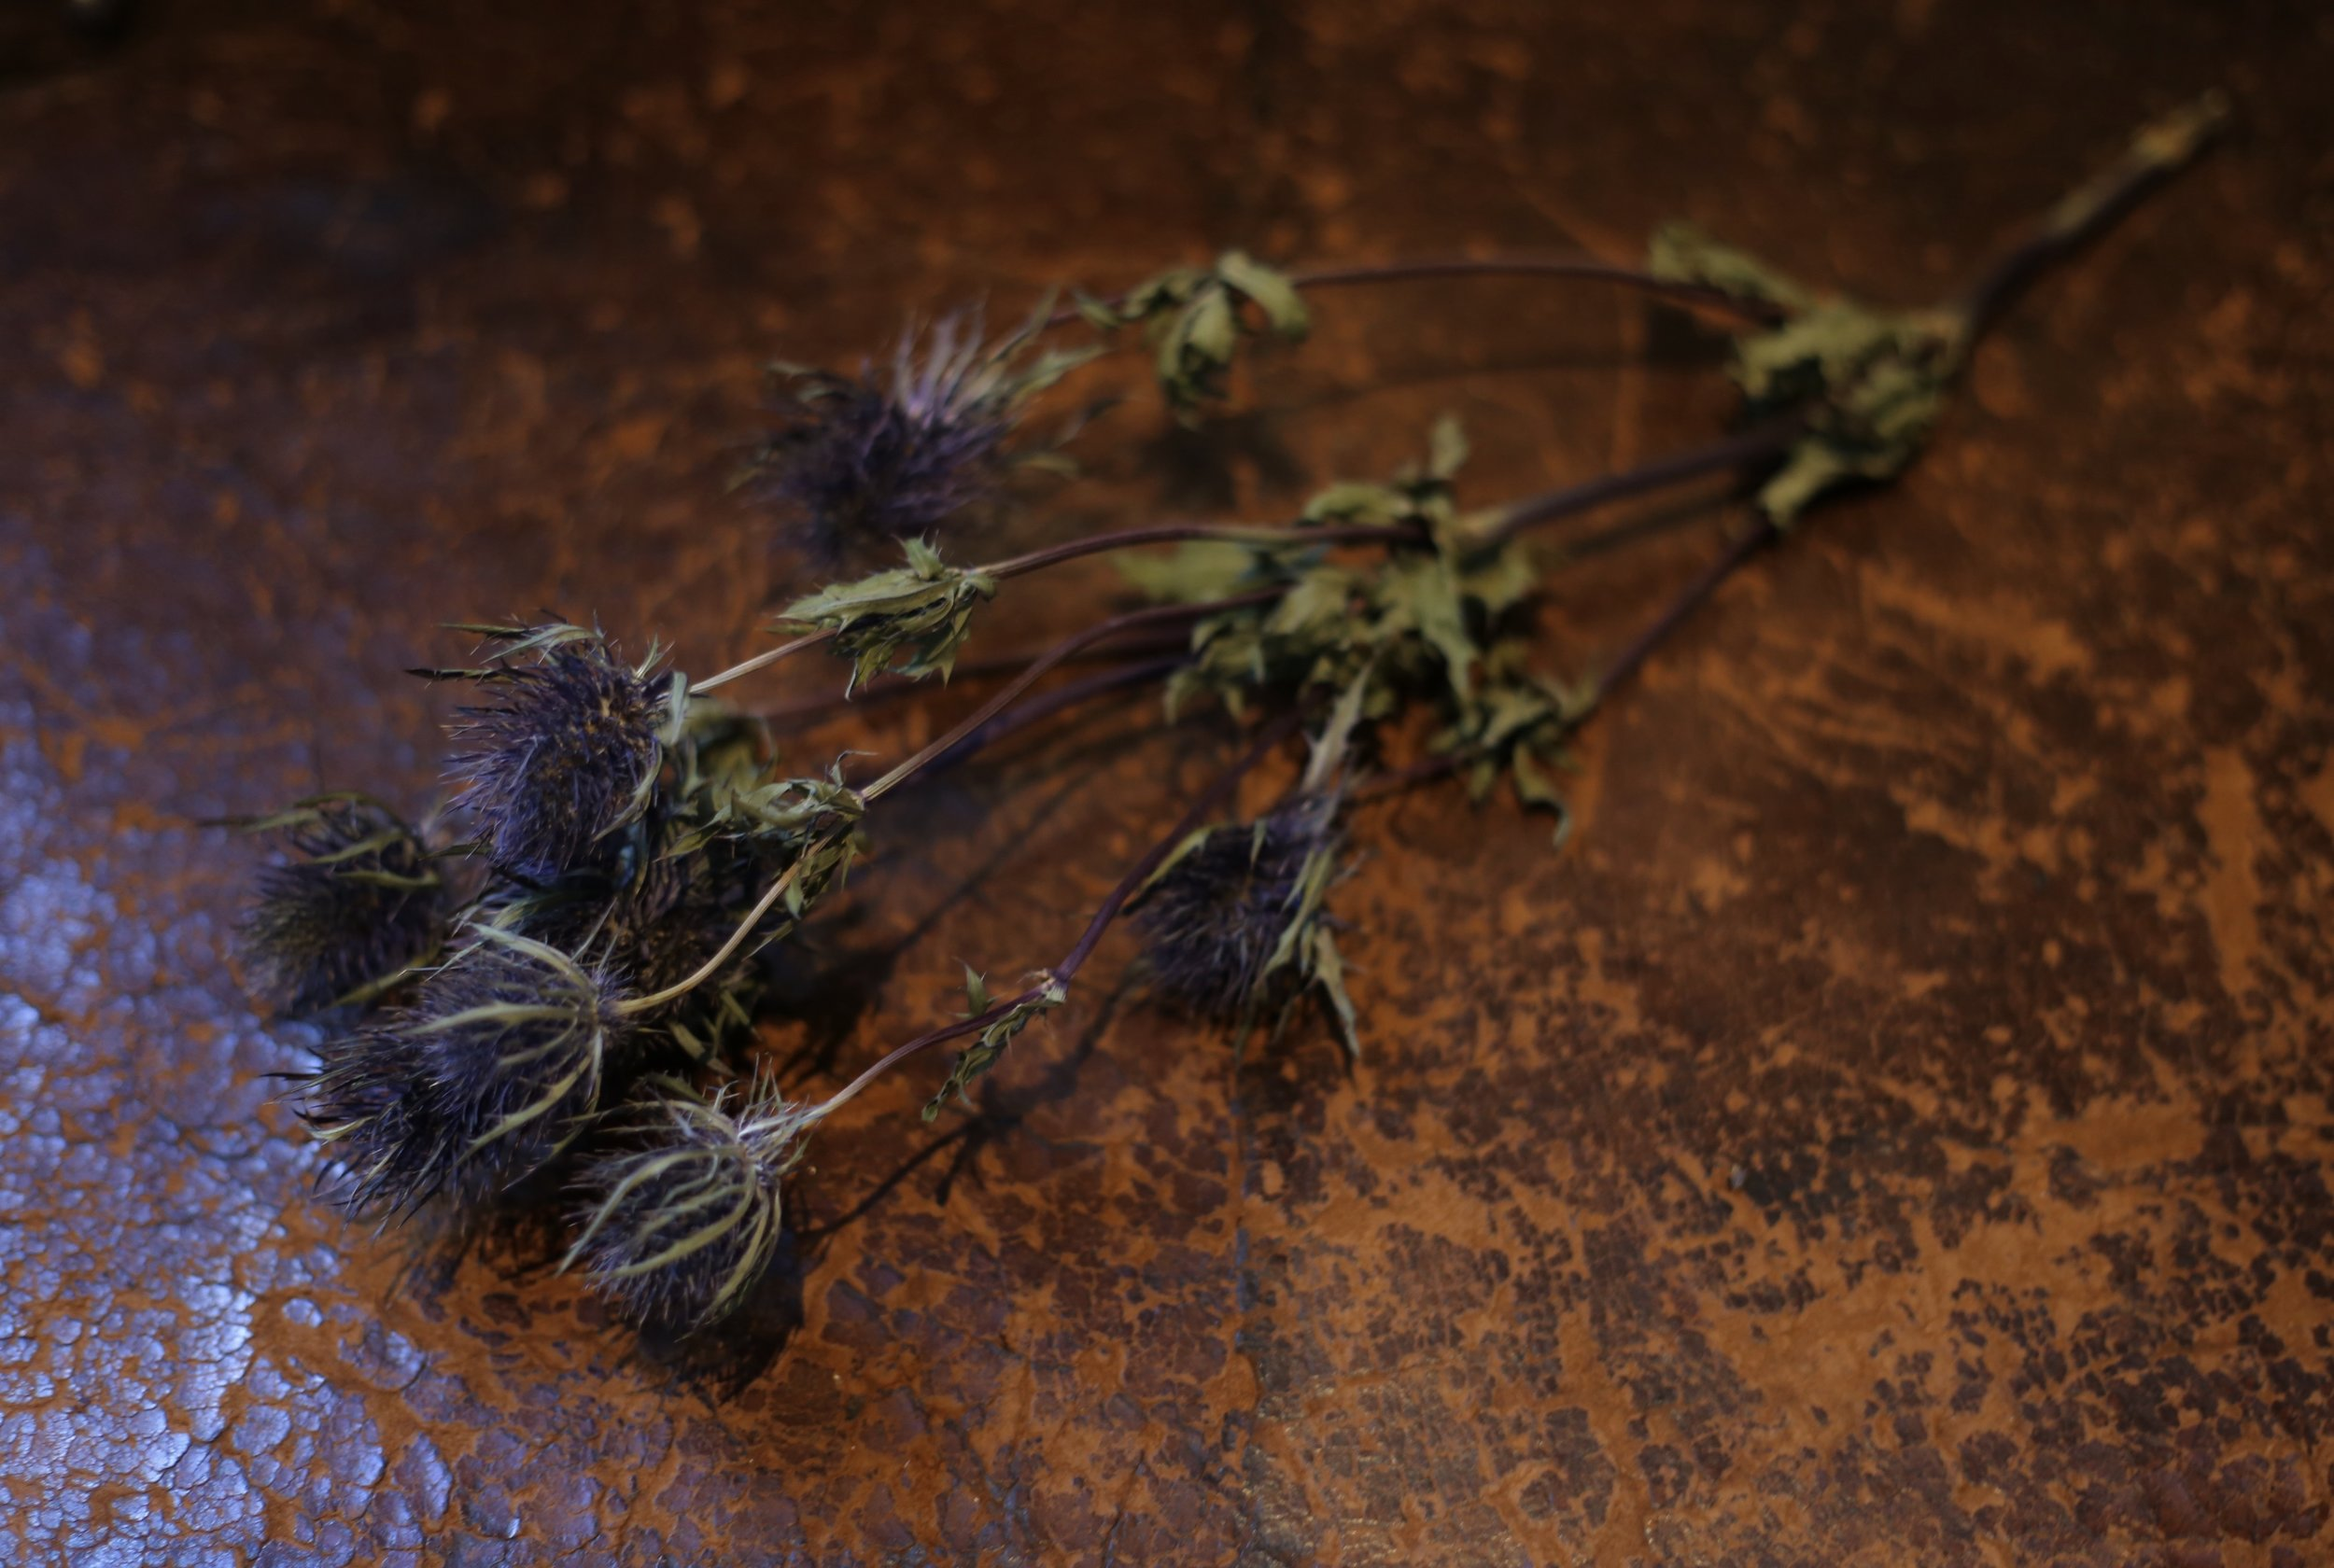 Dried thistle flowers on a leather seat in Rembrandt's house.